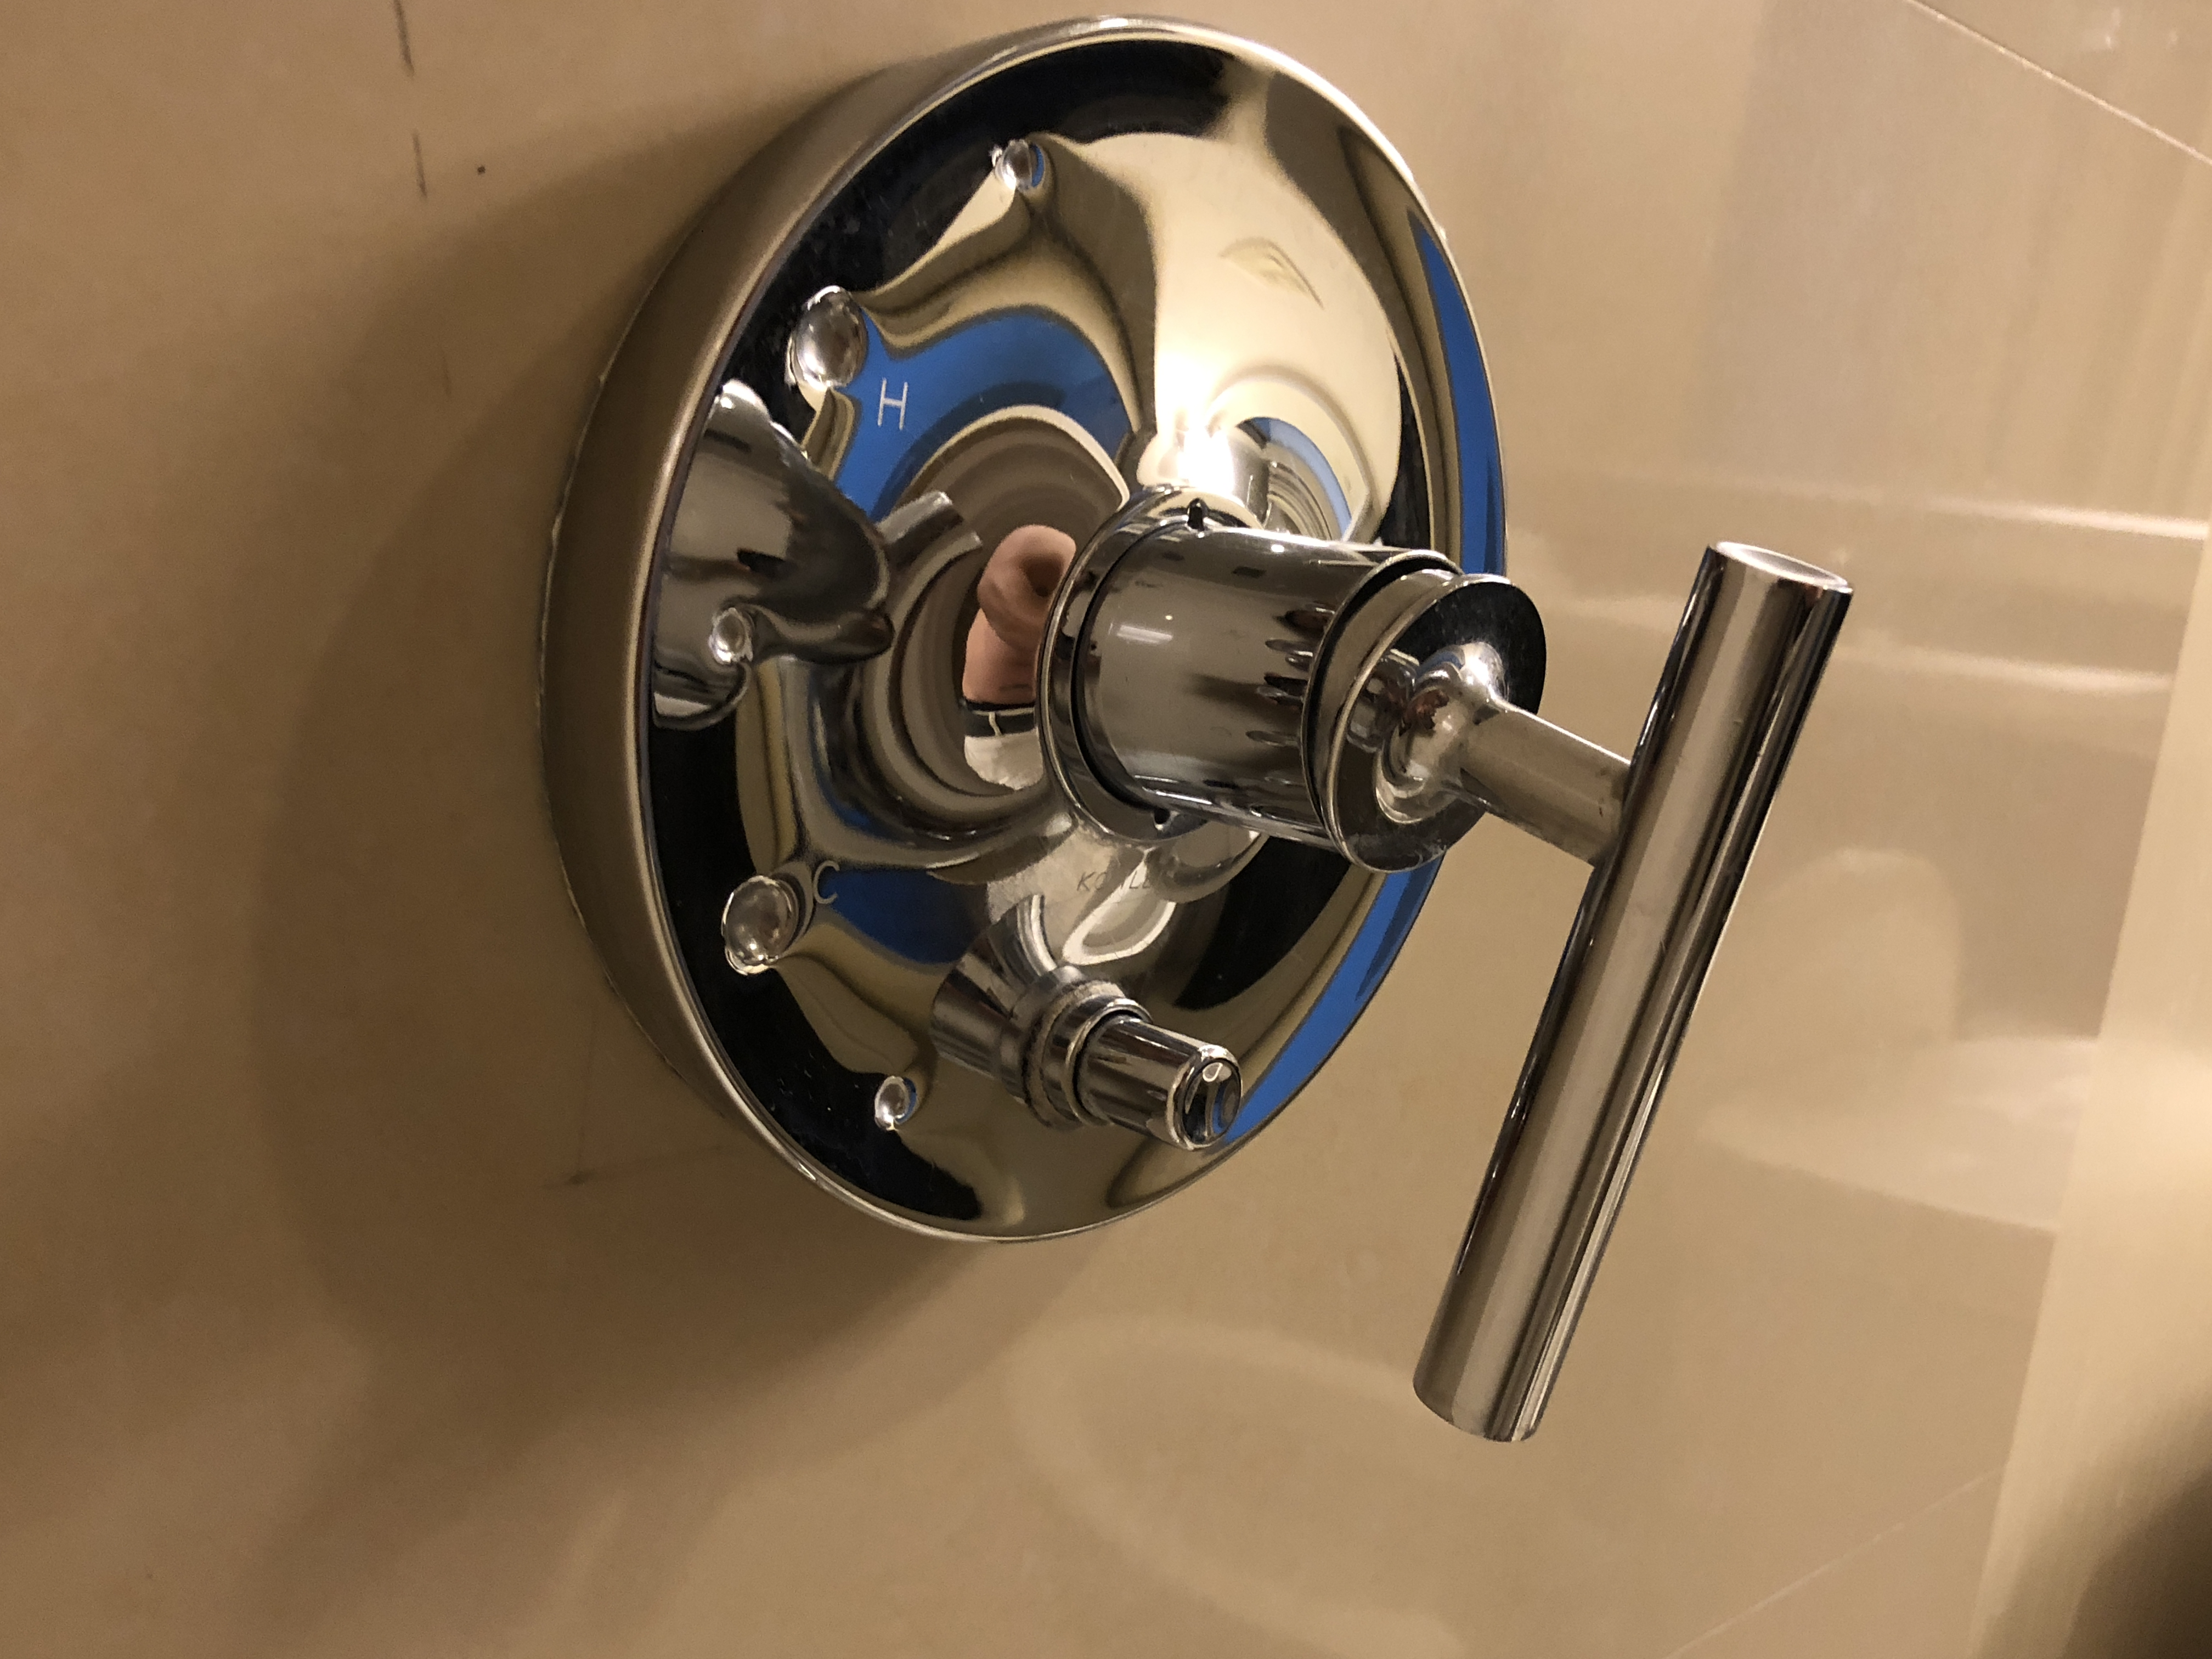 How to Adjust the Mixing Valve for a Single Handle Faucet in ... Ball Handle Mobile Home Shower on mobile home door locks, rv shower handles, contemporary shower handles, mobile home sinks, mobile home faucets, mobile home toilet, mobile home bathroom mirrors, mobile home door handles, mobile home hand rails, hotel shower handles, apartment shower handles, commercial shower handles, residential shower handles, mobile home bathroom accessories,